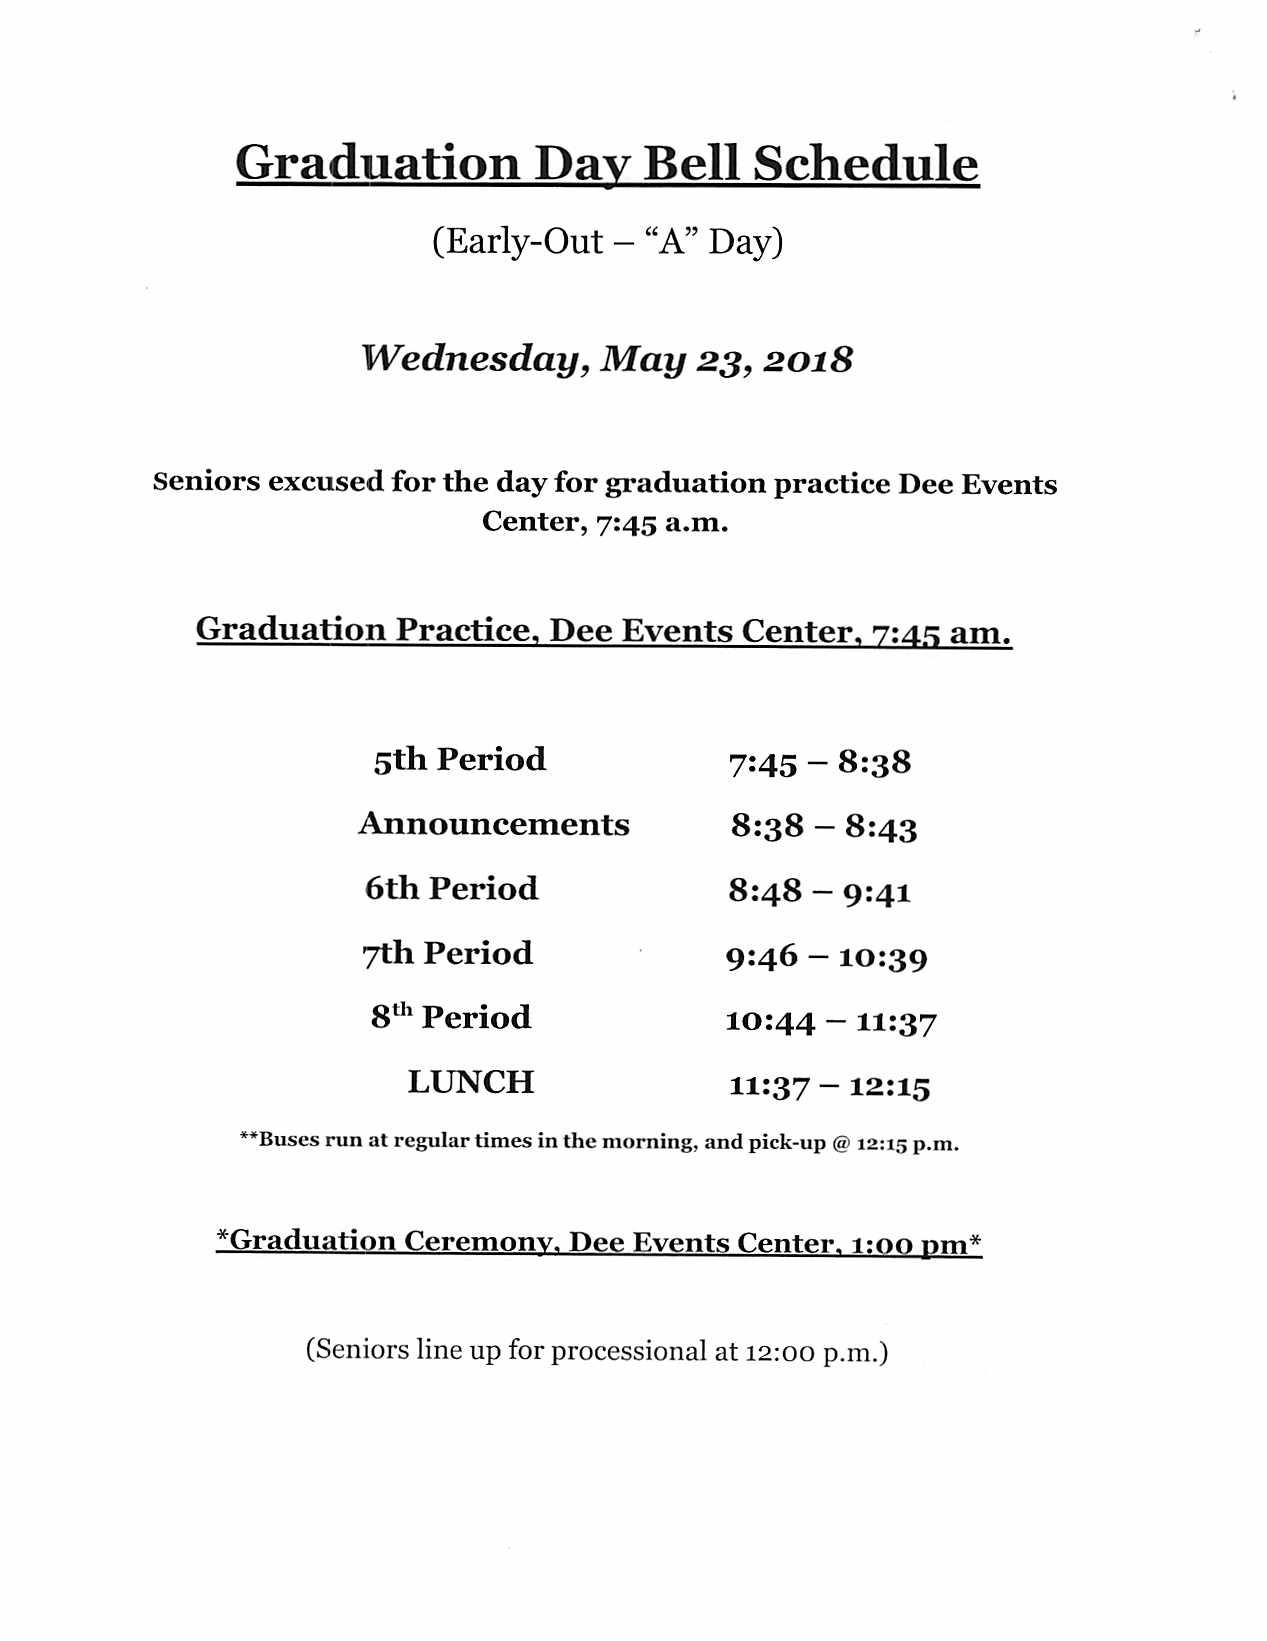 Wednesday Graduation Day Schedule